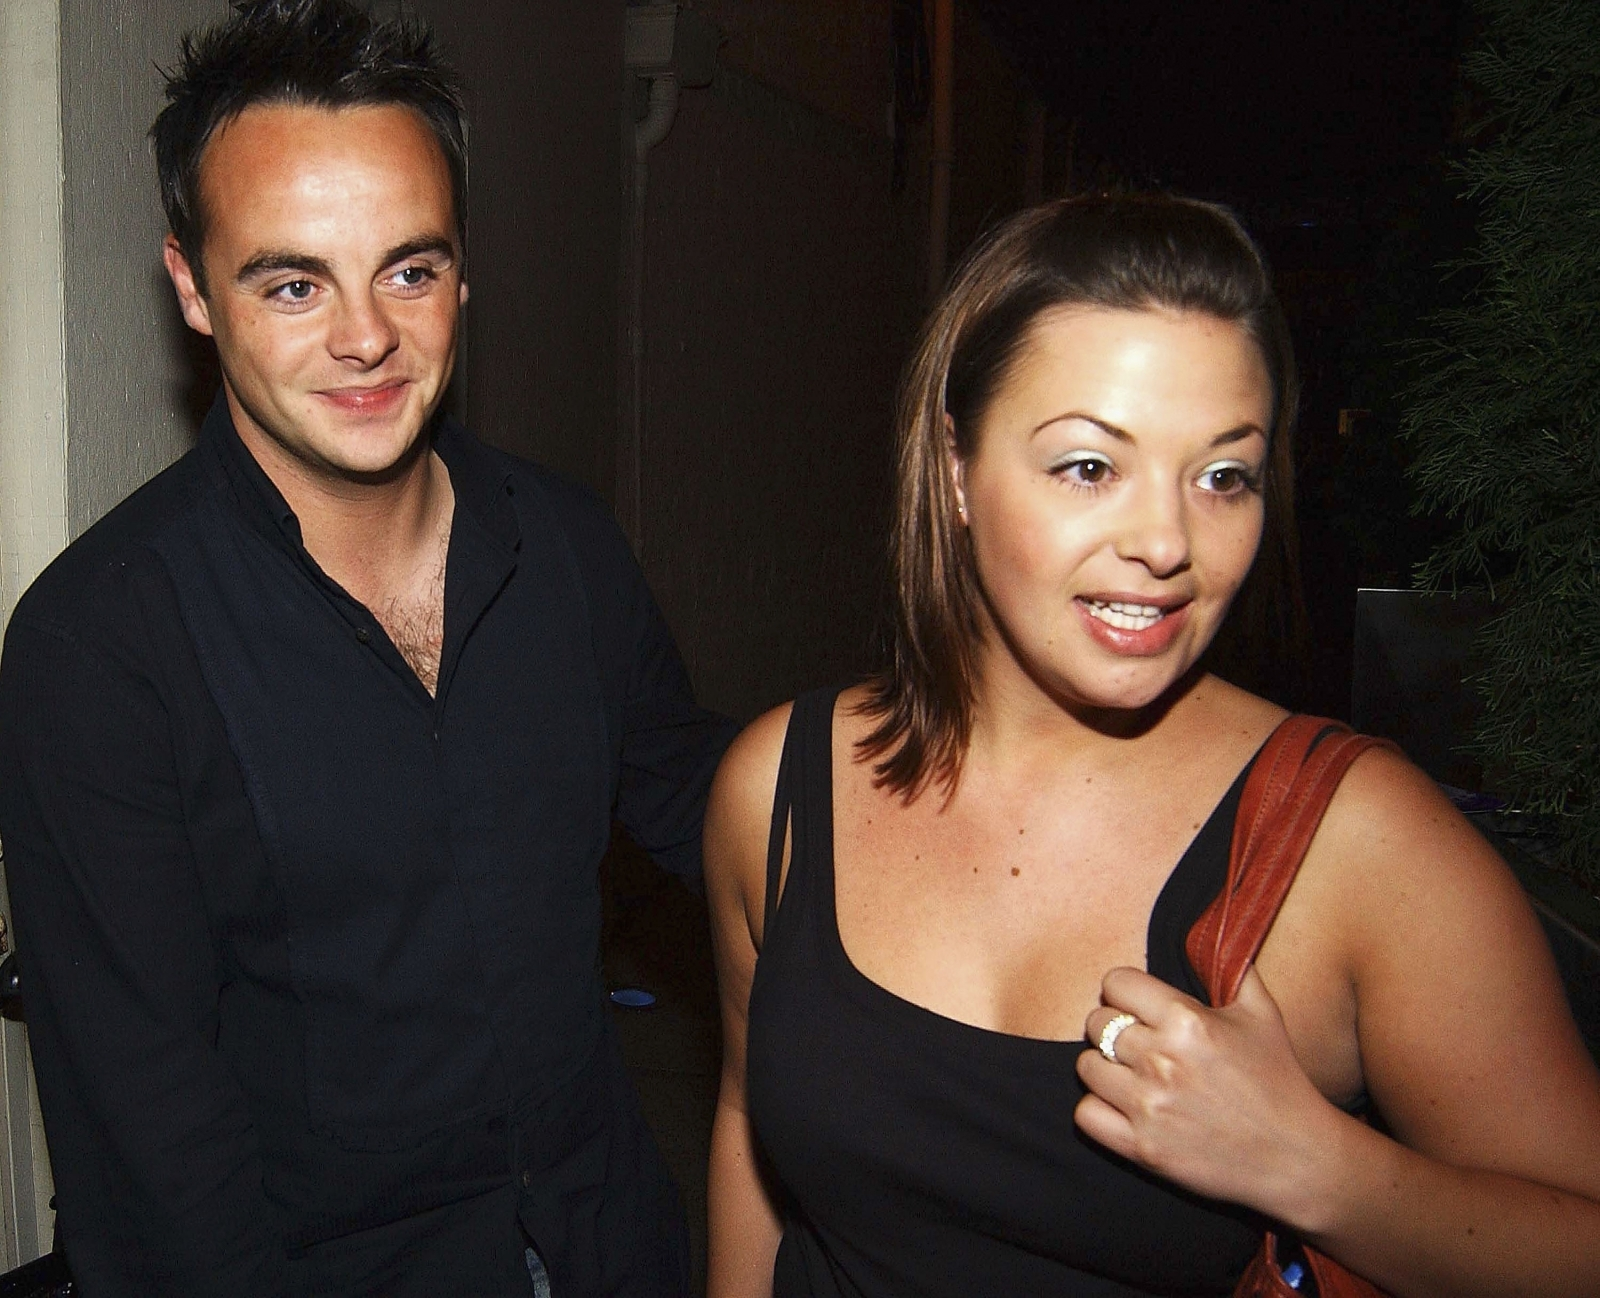 Ant McPartlin confirms he has filed for divorce from wife, Lisa Armstrong